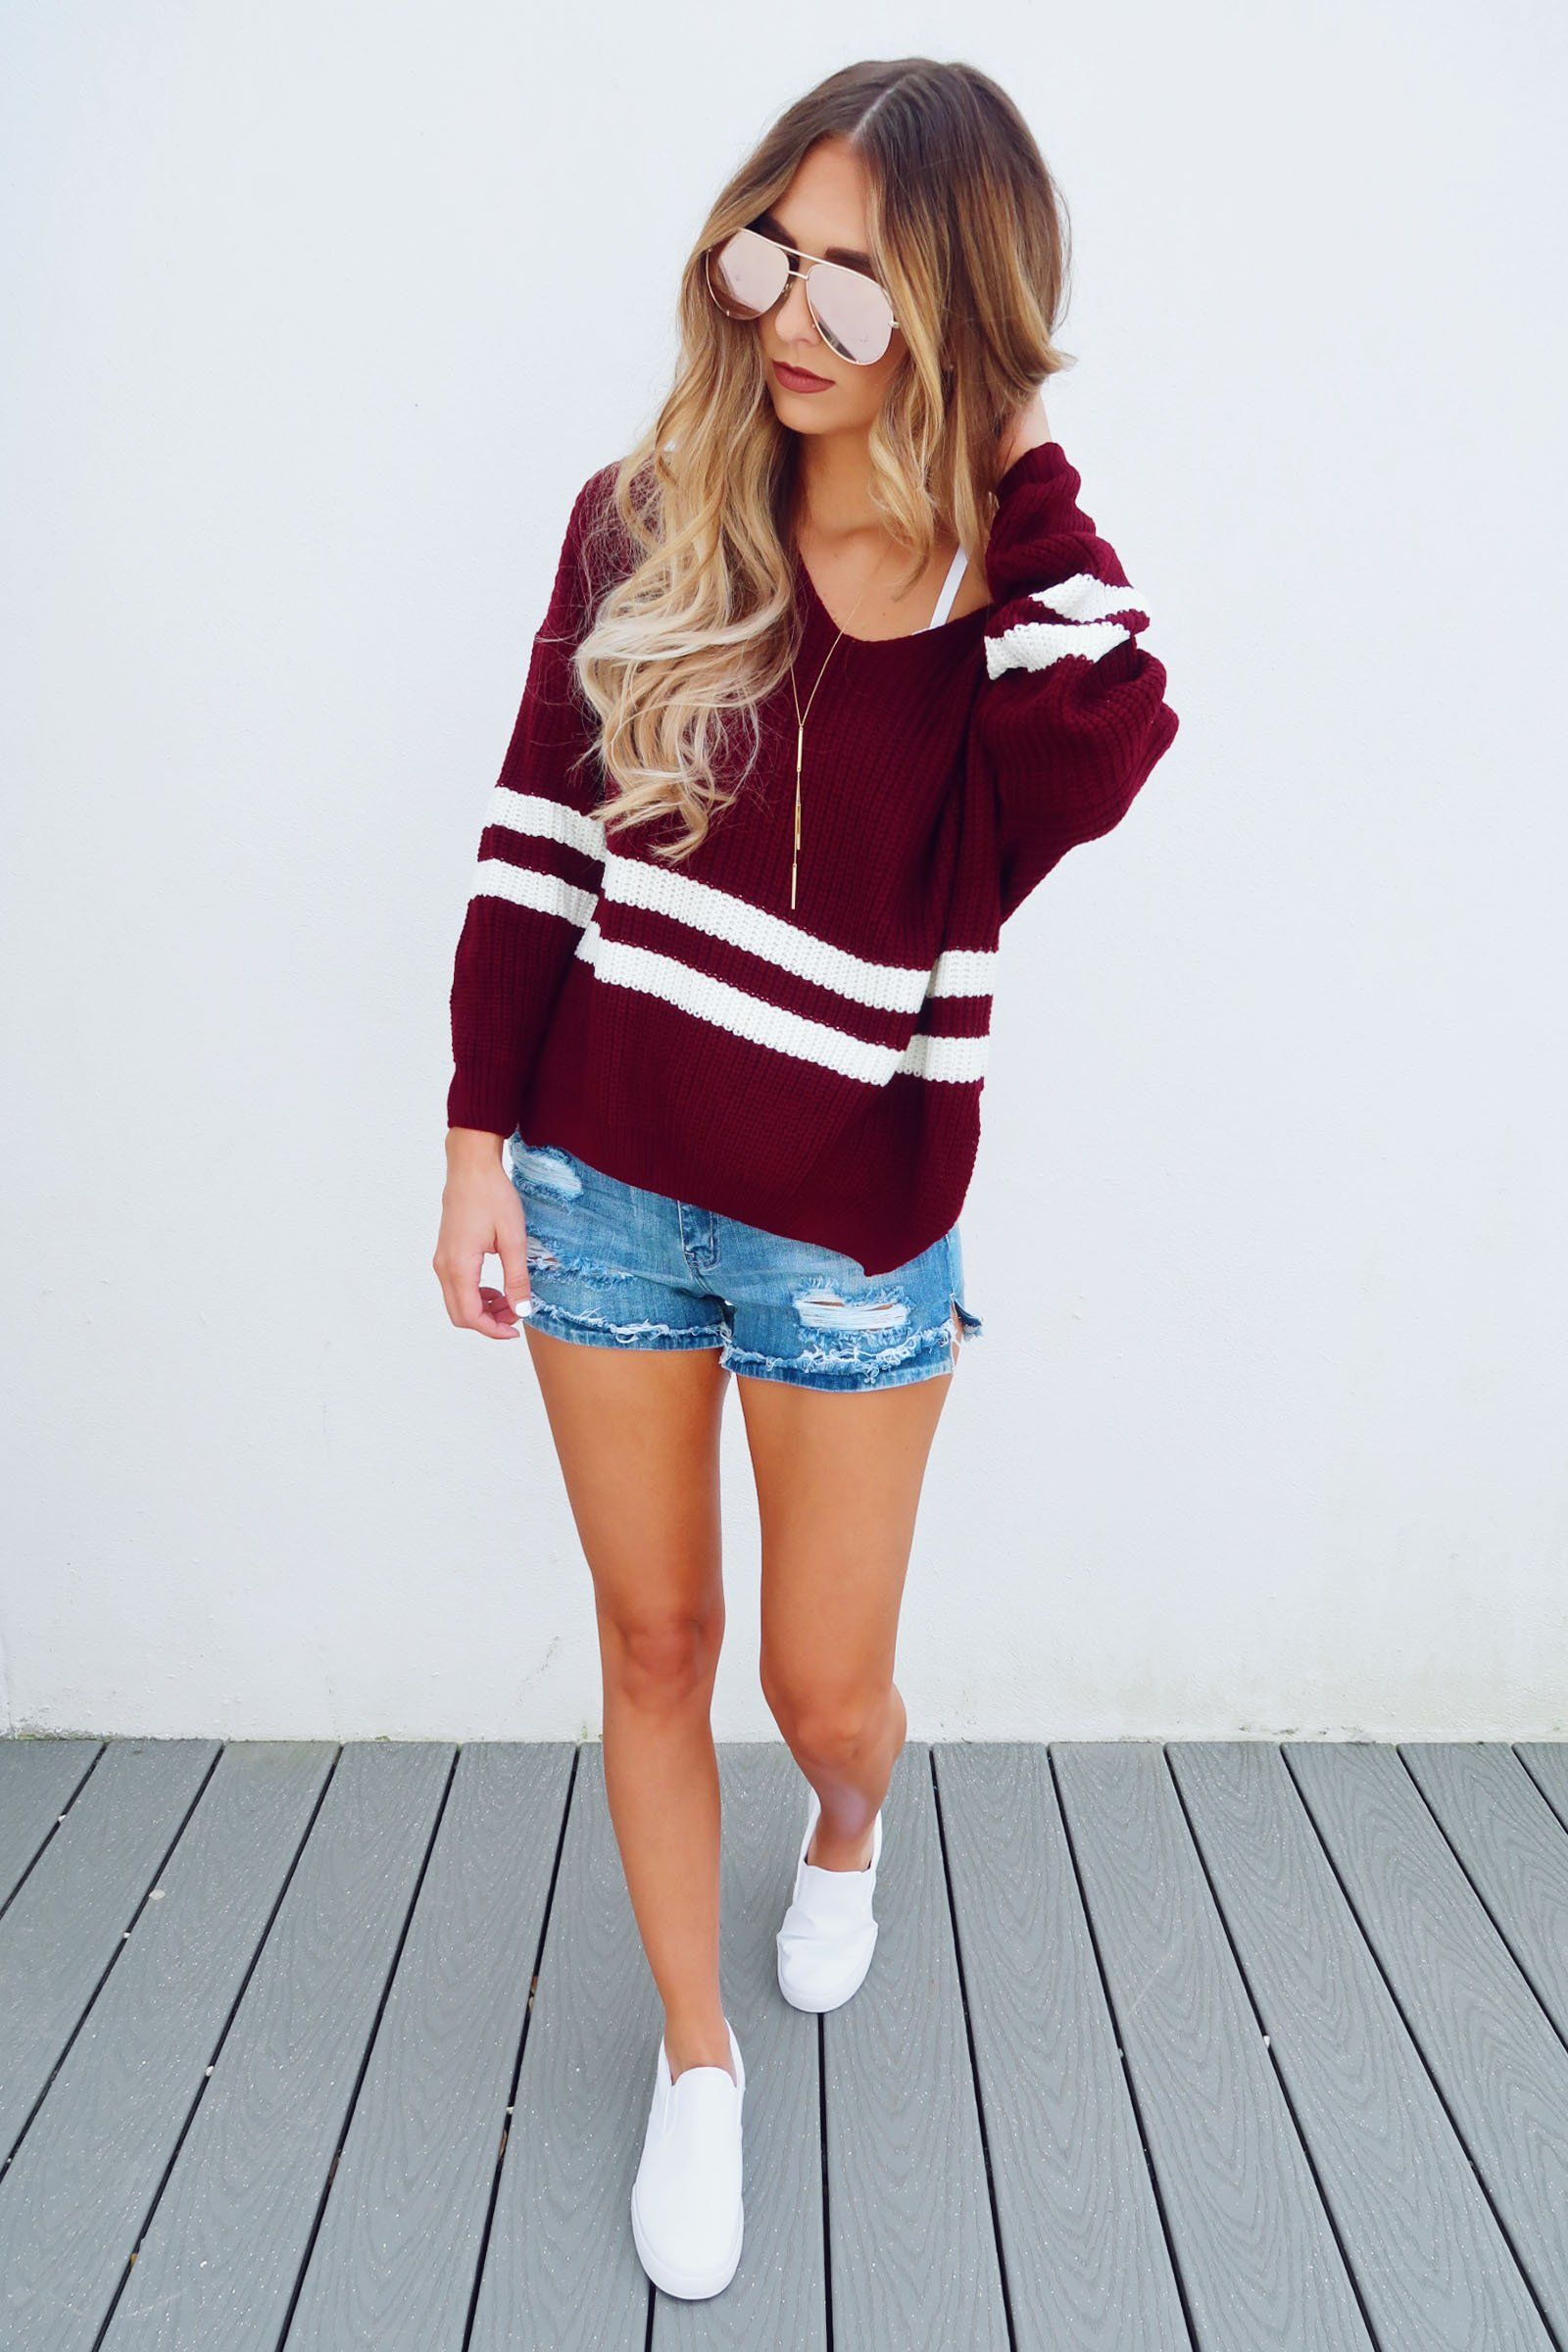 809eed78e4 Share to save 10% on your order instantly! Keeping It Cozy Sweater   Maroon White